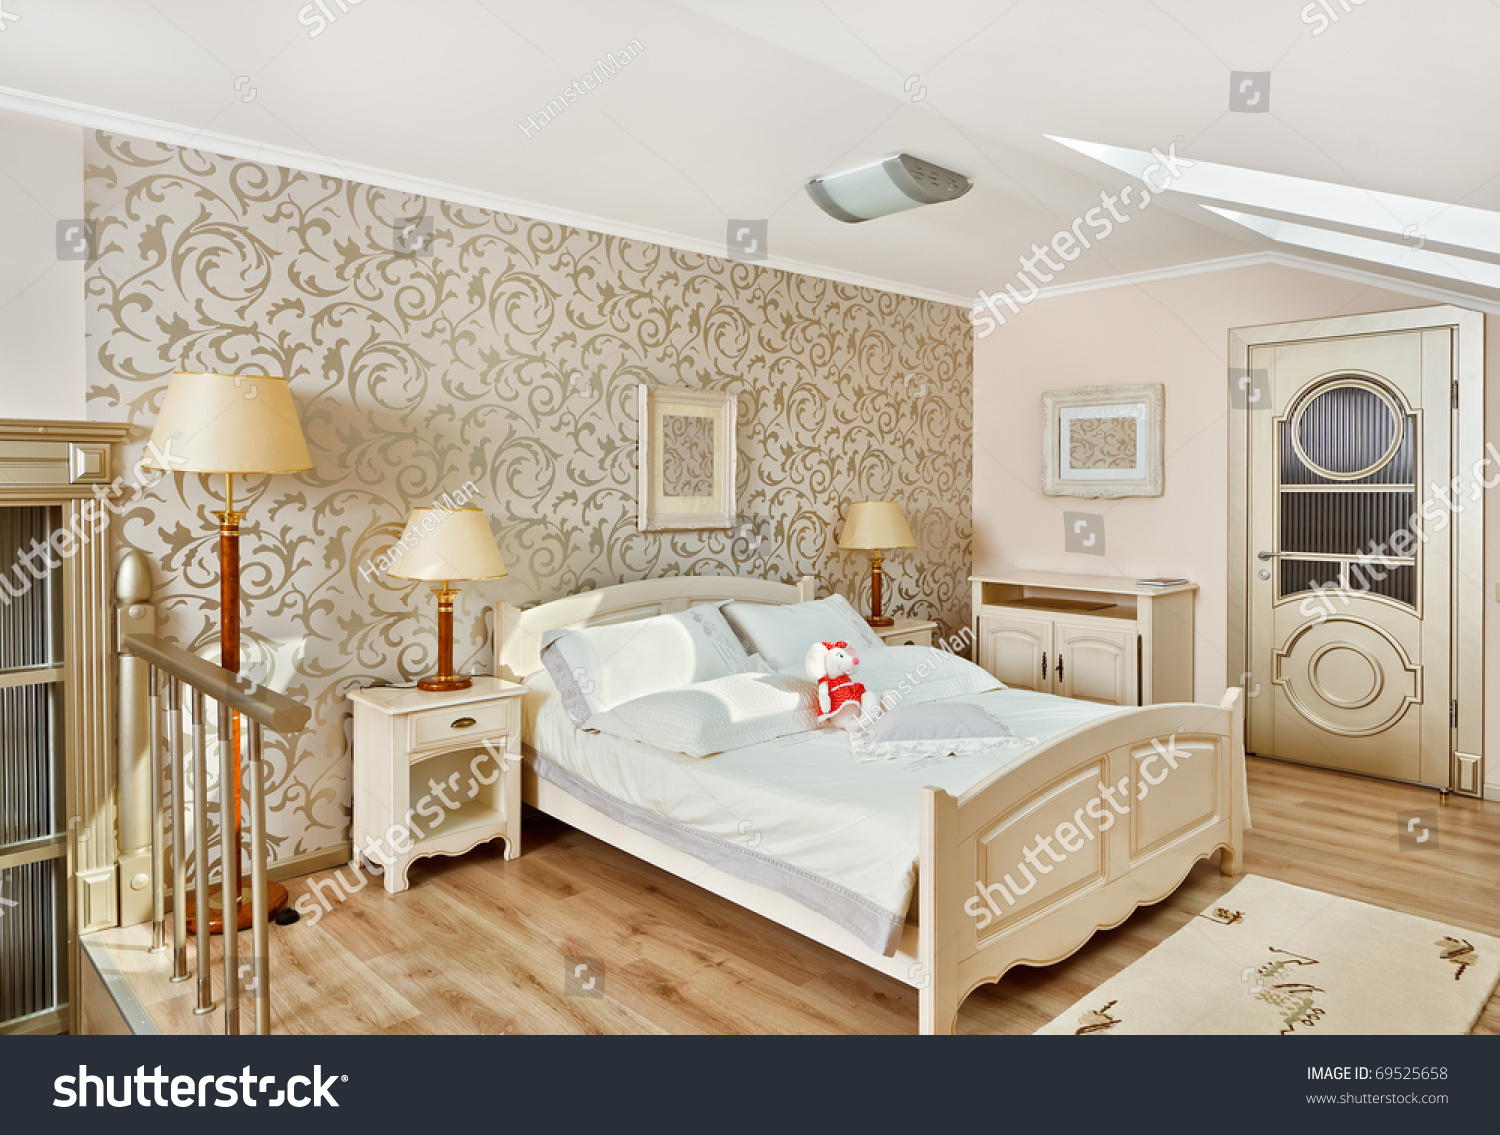 Modern art deco style bedroom interior stock photo 69525658 shutterstock - Deco modern verblijf ...